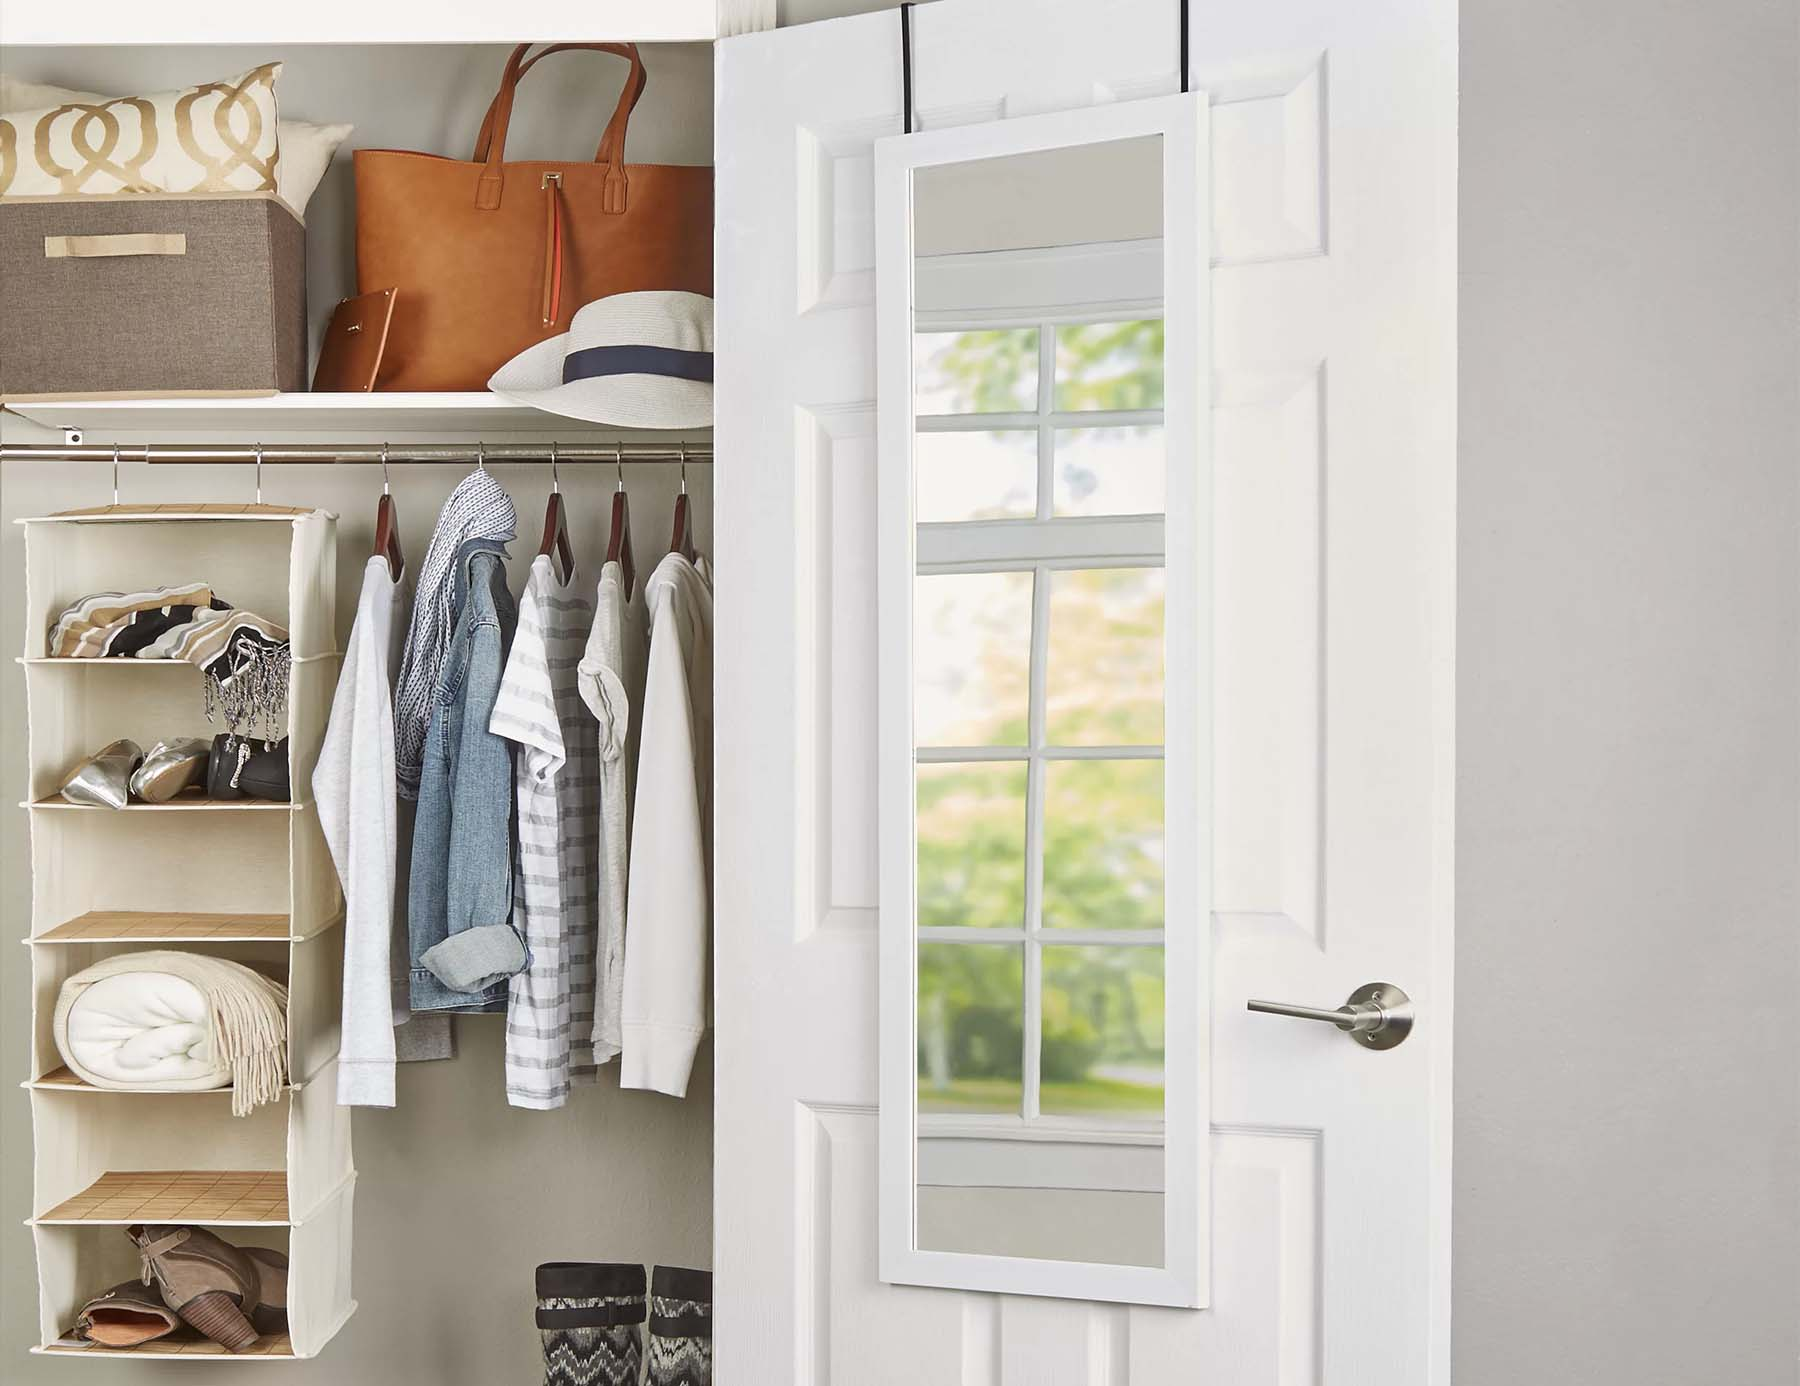 small entryway closet with organizers and door mirror